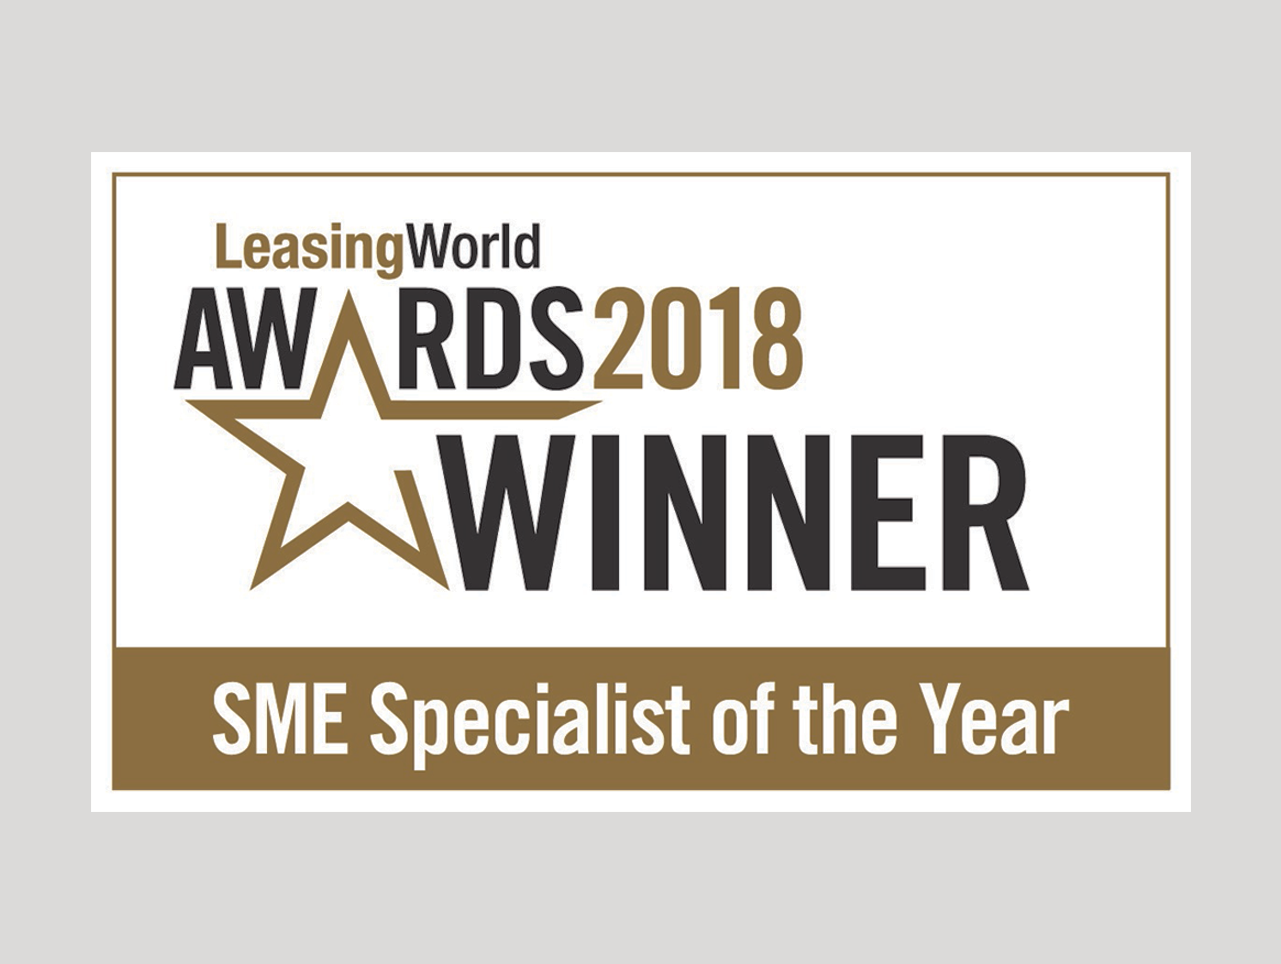 SME specialist of the year